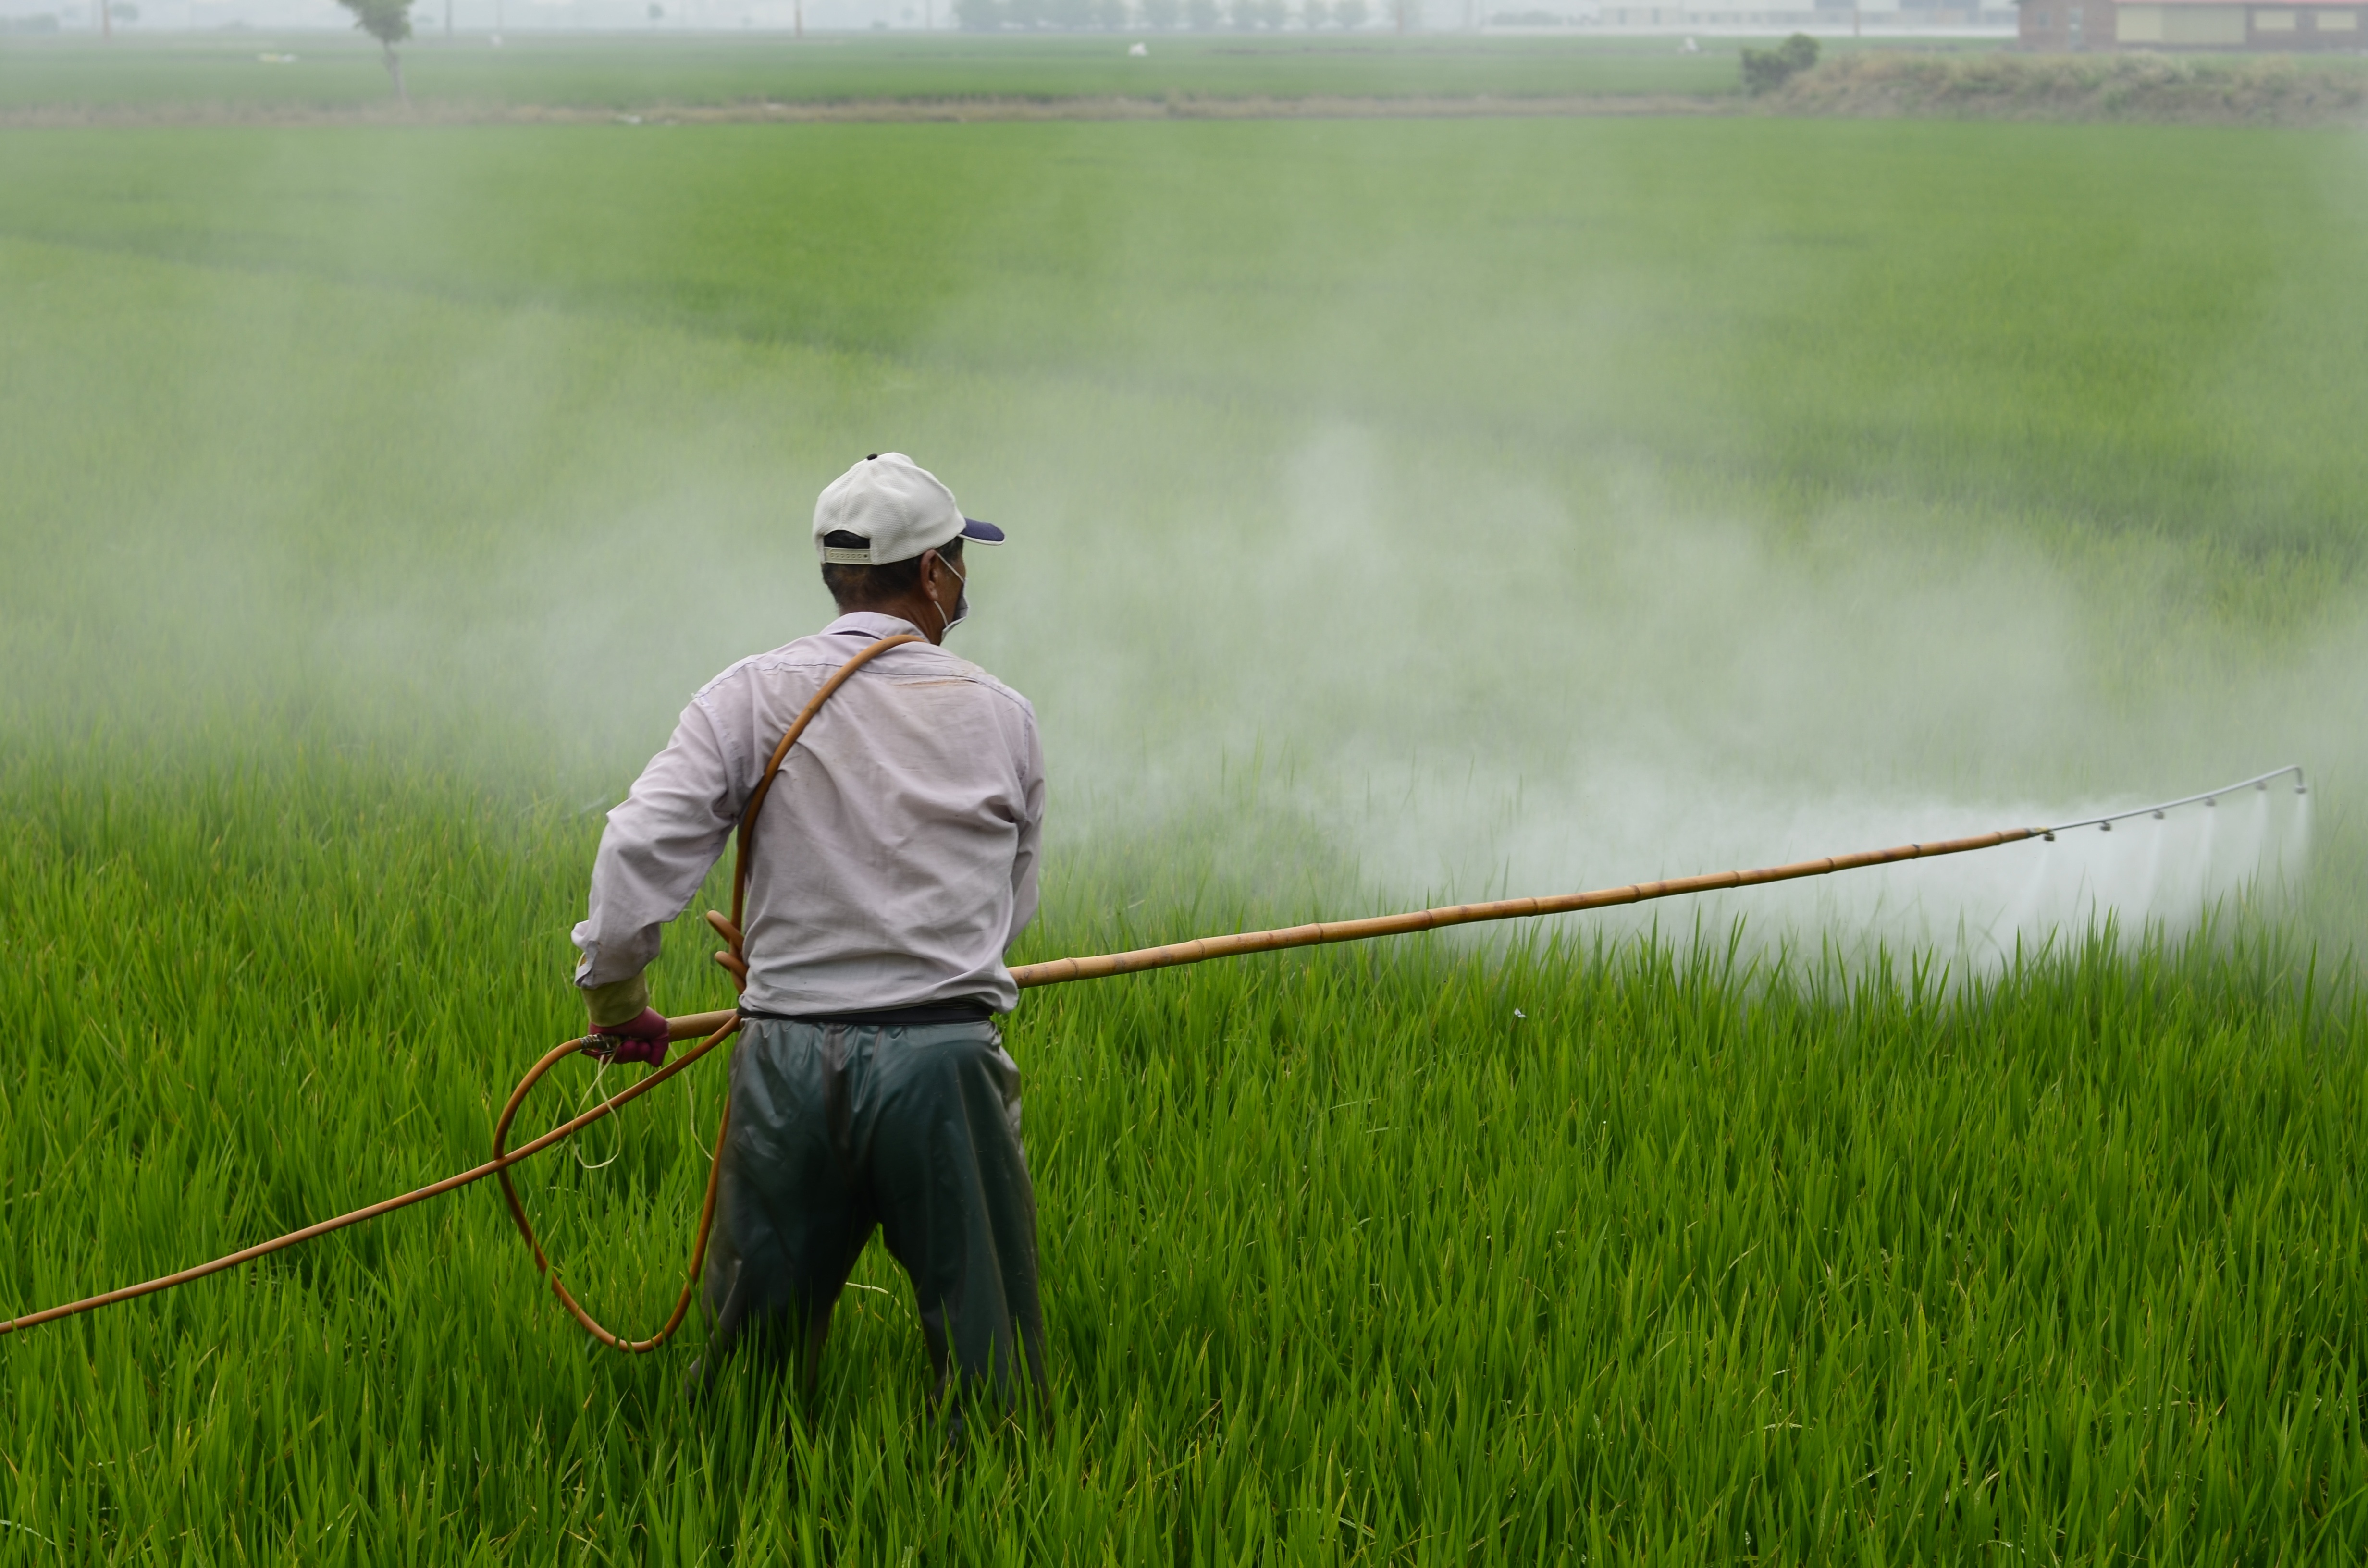 man spraying pesticide in a field